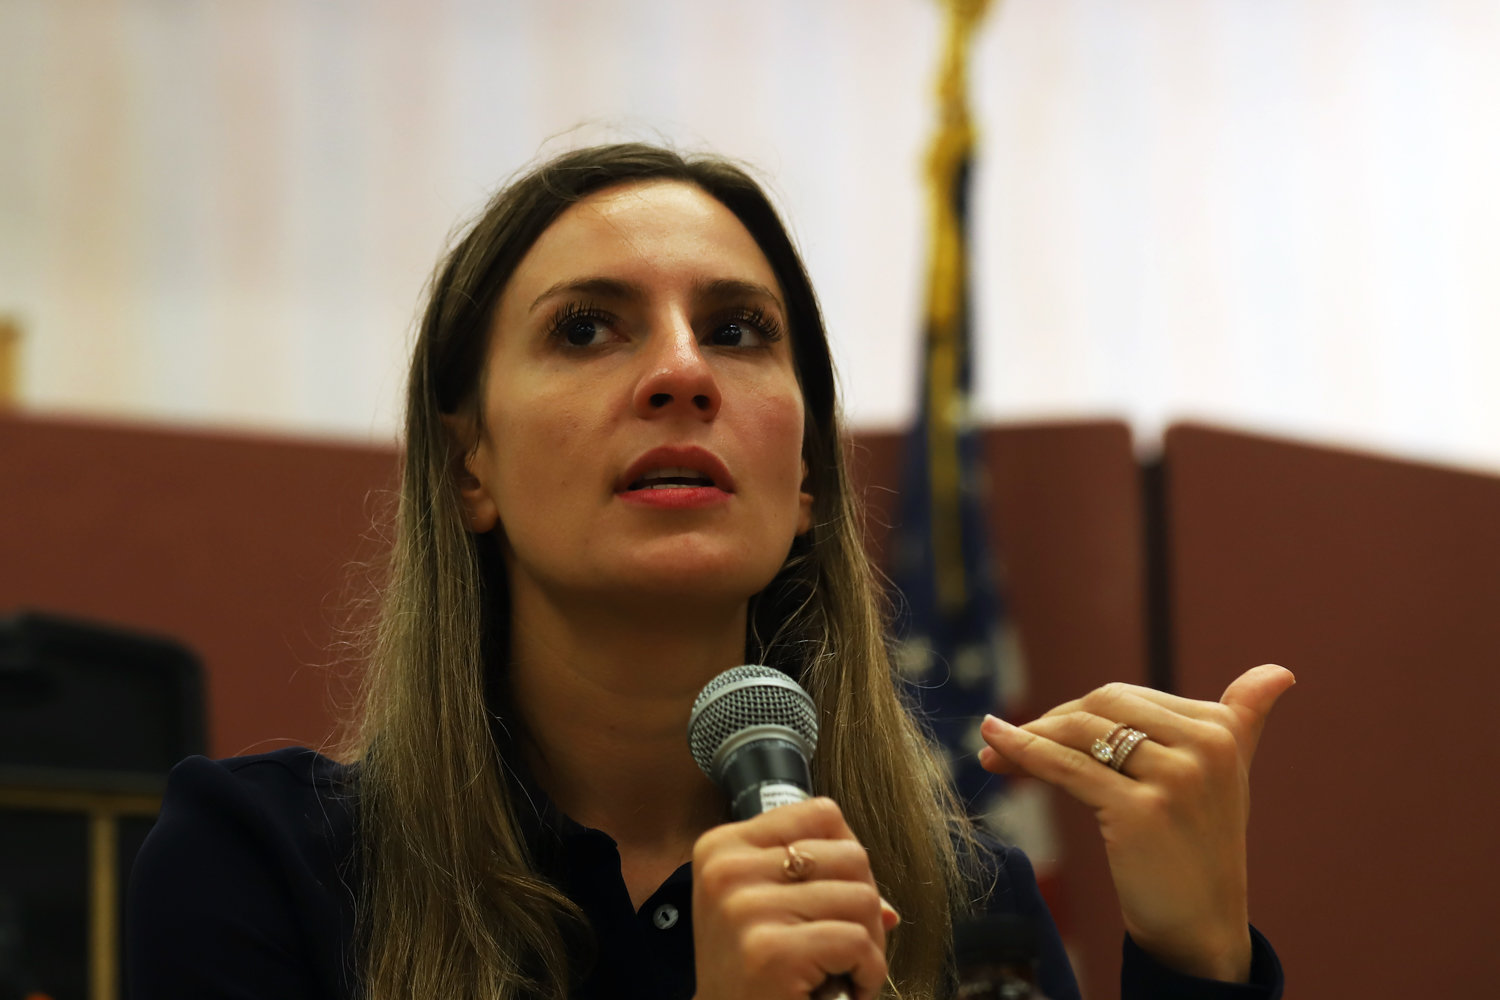 State Sen. Alessandra Biaggi speaks about her legislative successes and efforts since taking office in January at a brunch in her honor at the Van Cortlandt Jewish Center.